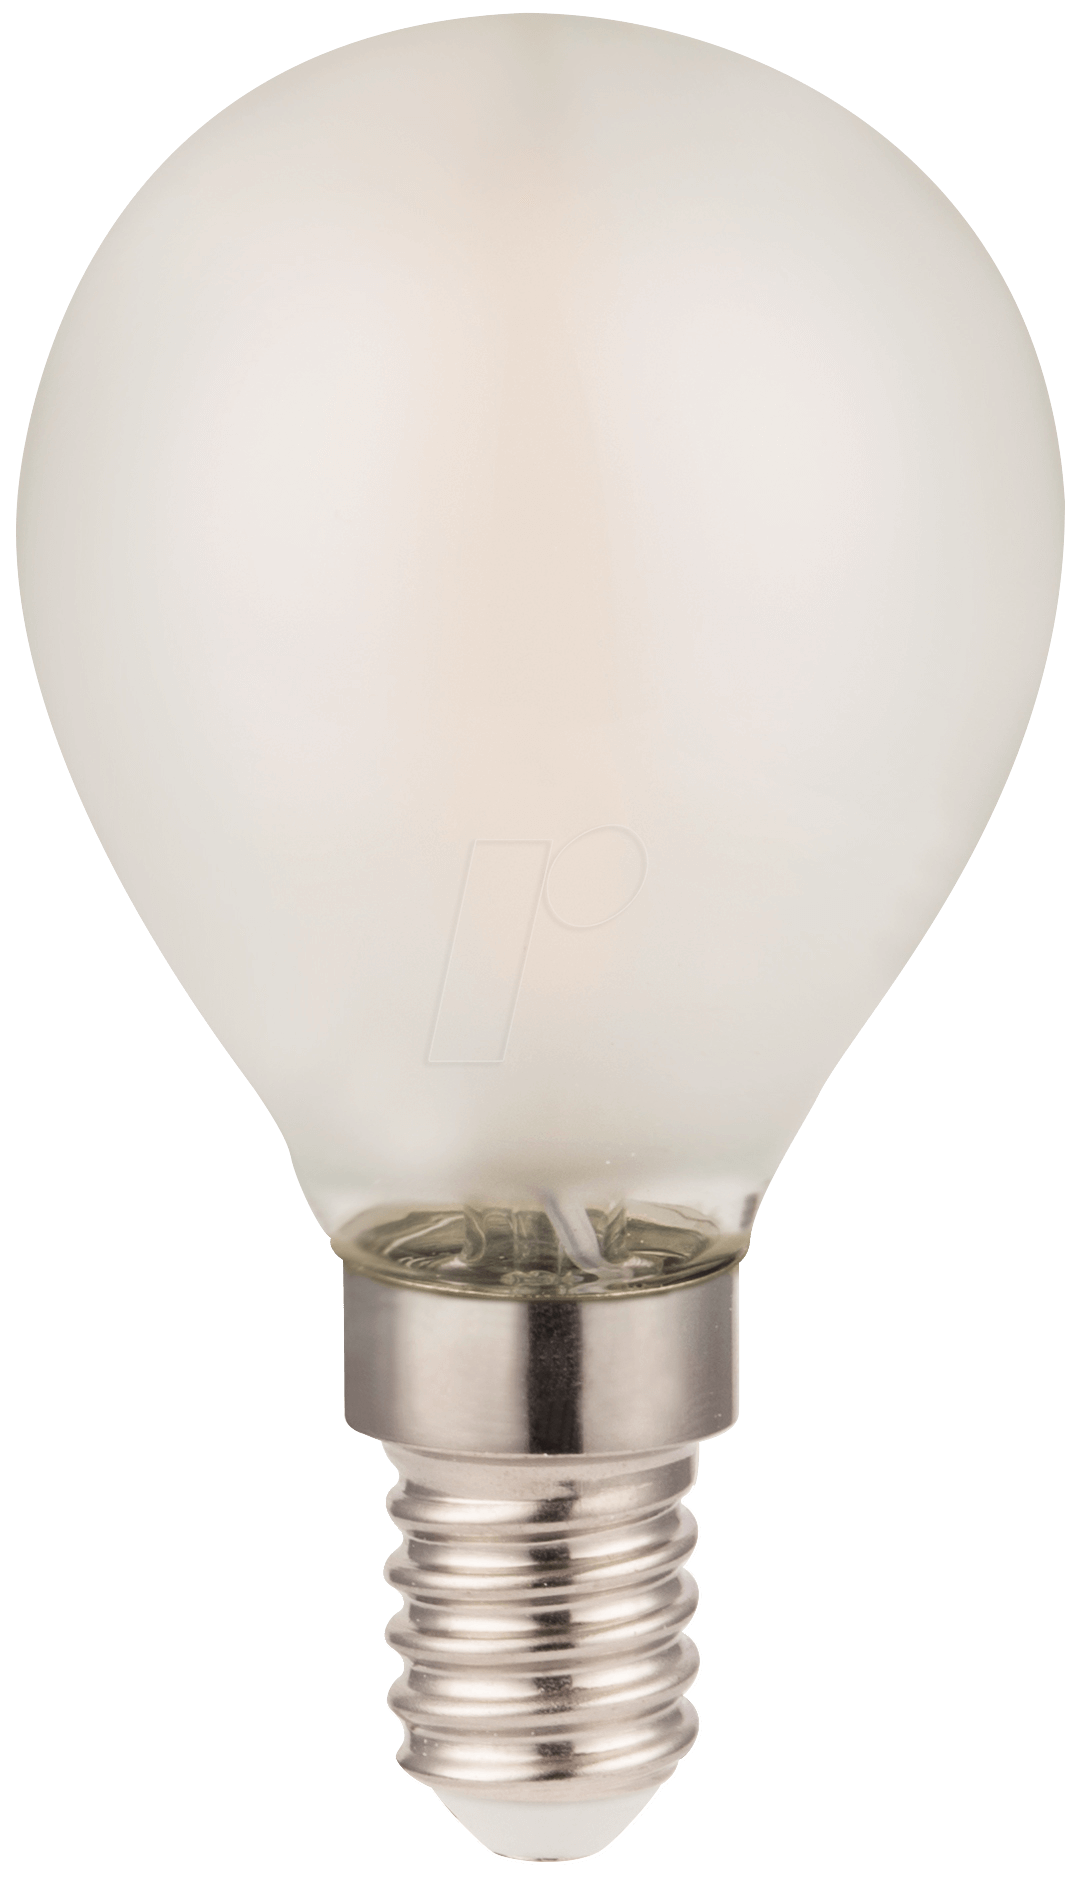 egb 539 720 filament led bulb p45 frosted e14 2w 240lm 2700k at reichelt elektronik. Black Bedroom Furniture Sets. Home Design Ideas